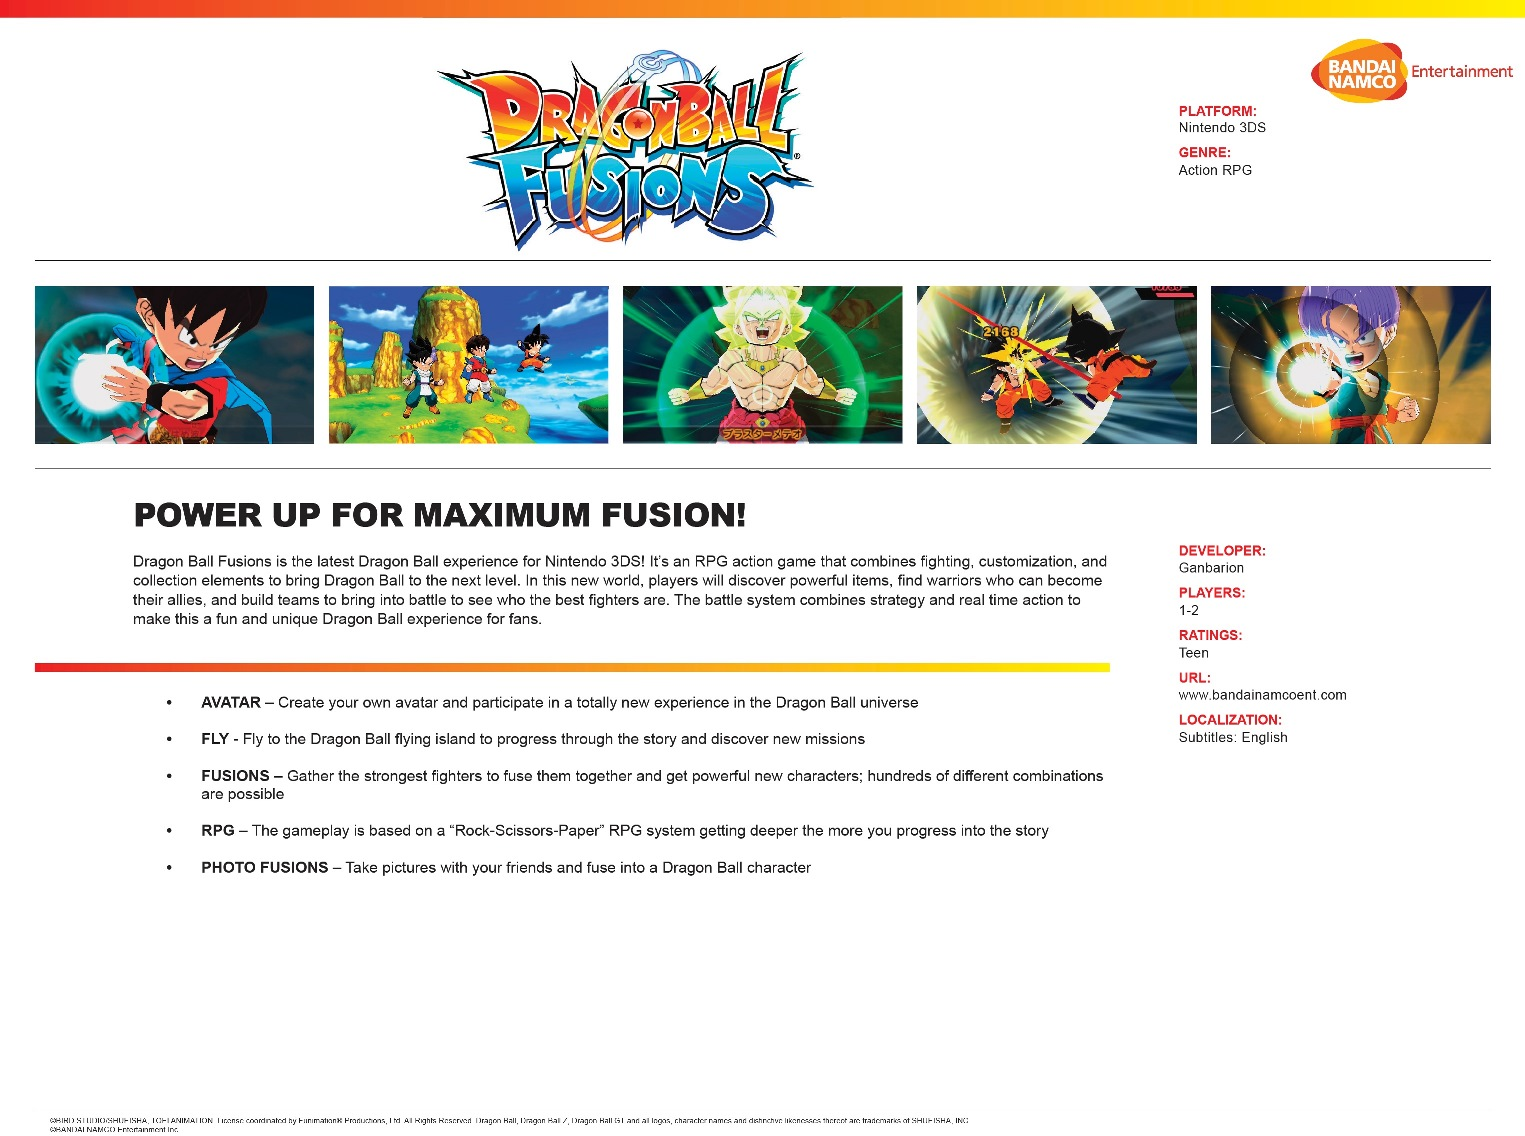 dragon-ball-fusions-fact-sheet-1